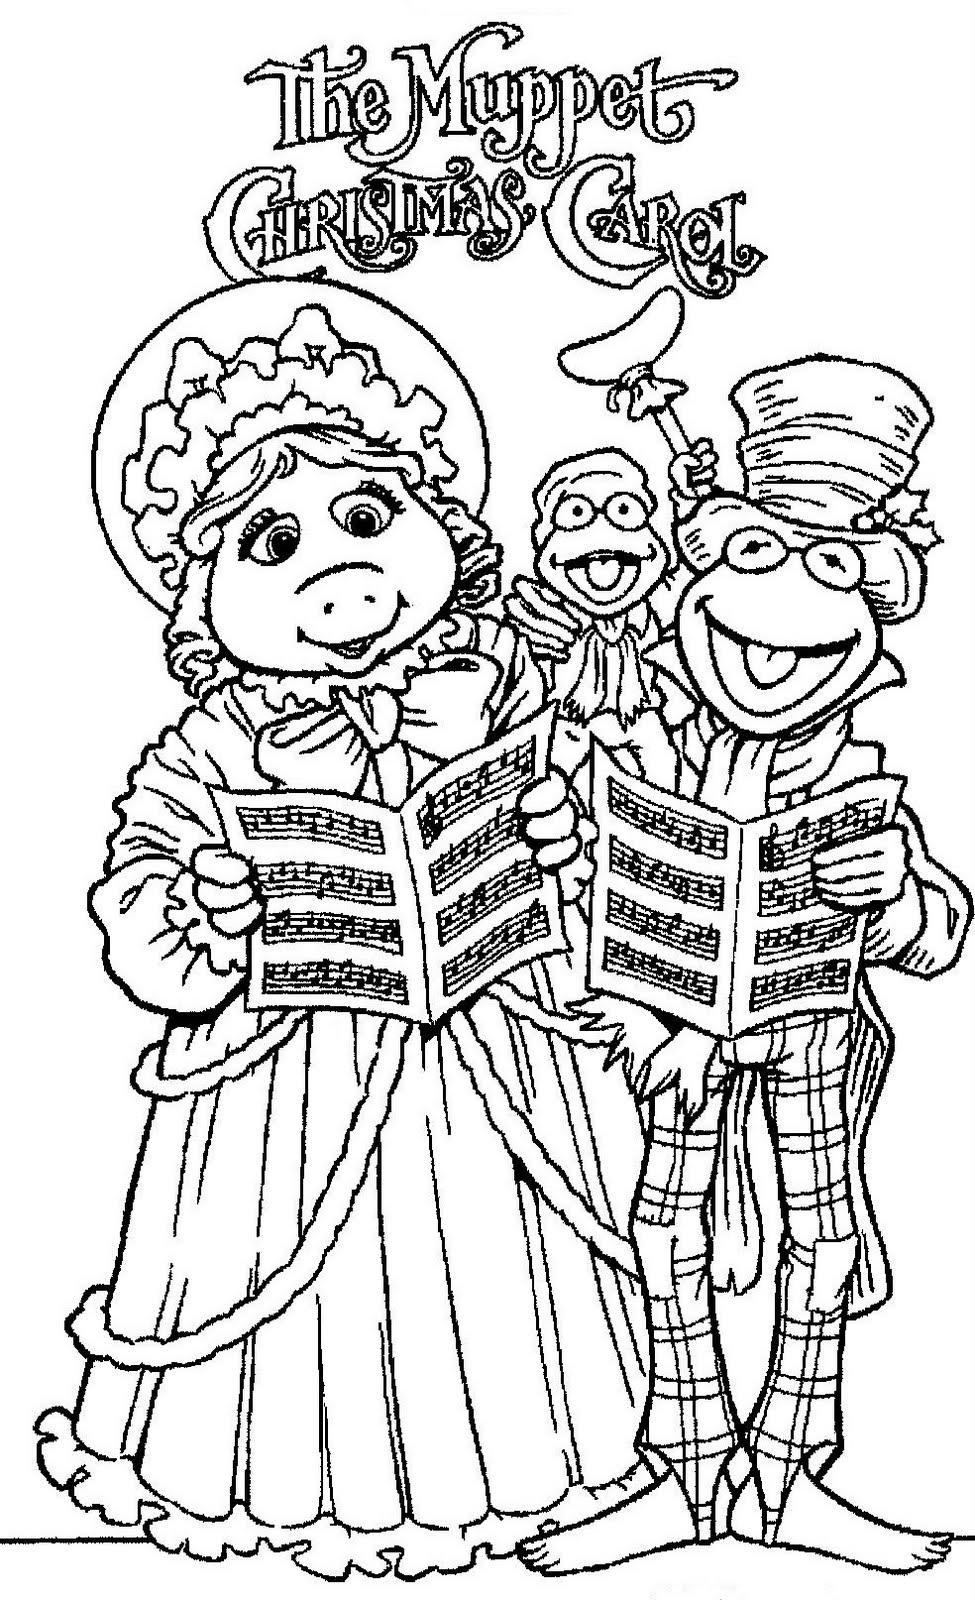 miss piggy coloring pages muppets - photo#30